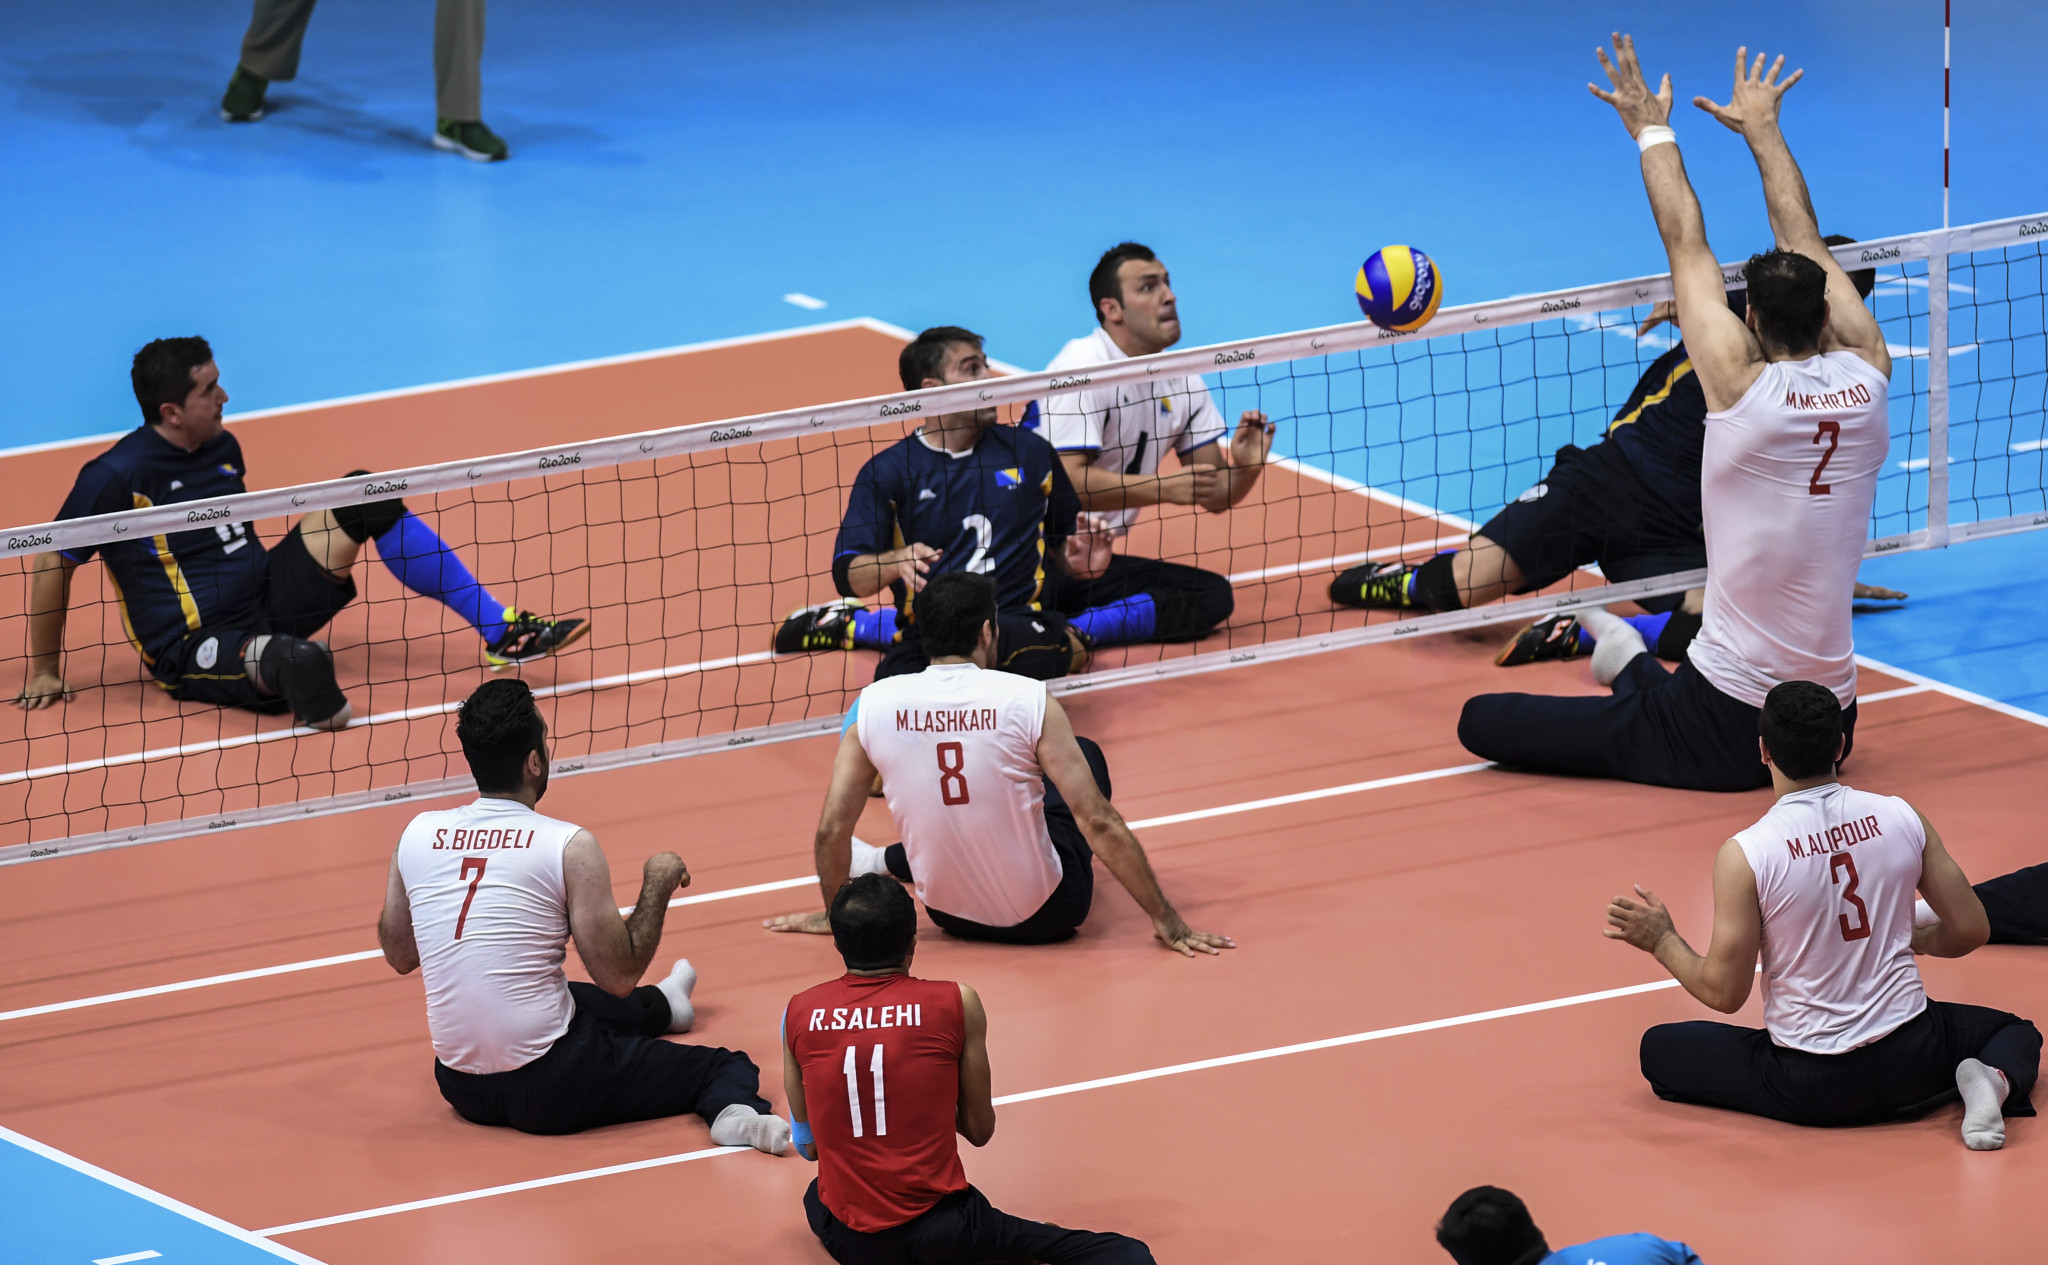 Cairo chosen to host Sitting Volleyball World Cup in December